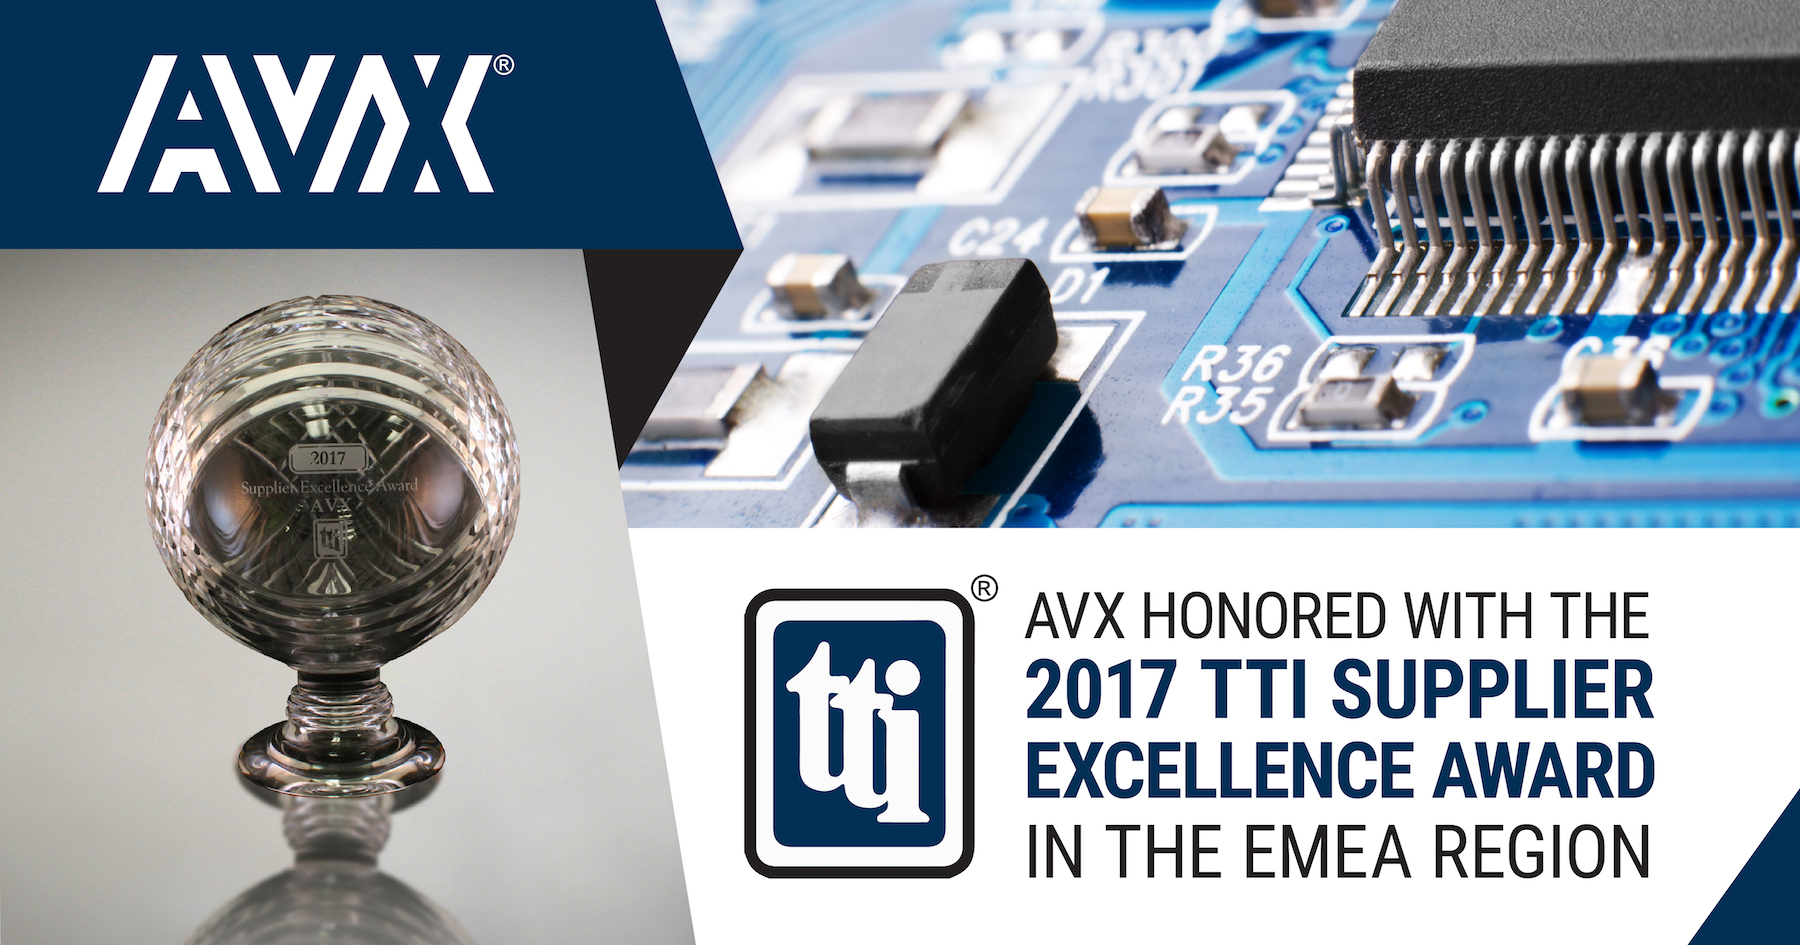 AVX Honored with 2017 TTI Supplier Excellence Award